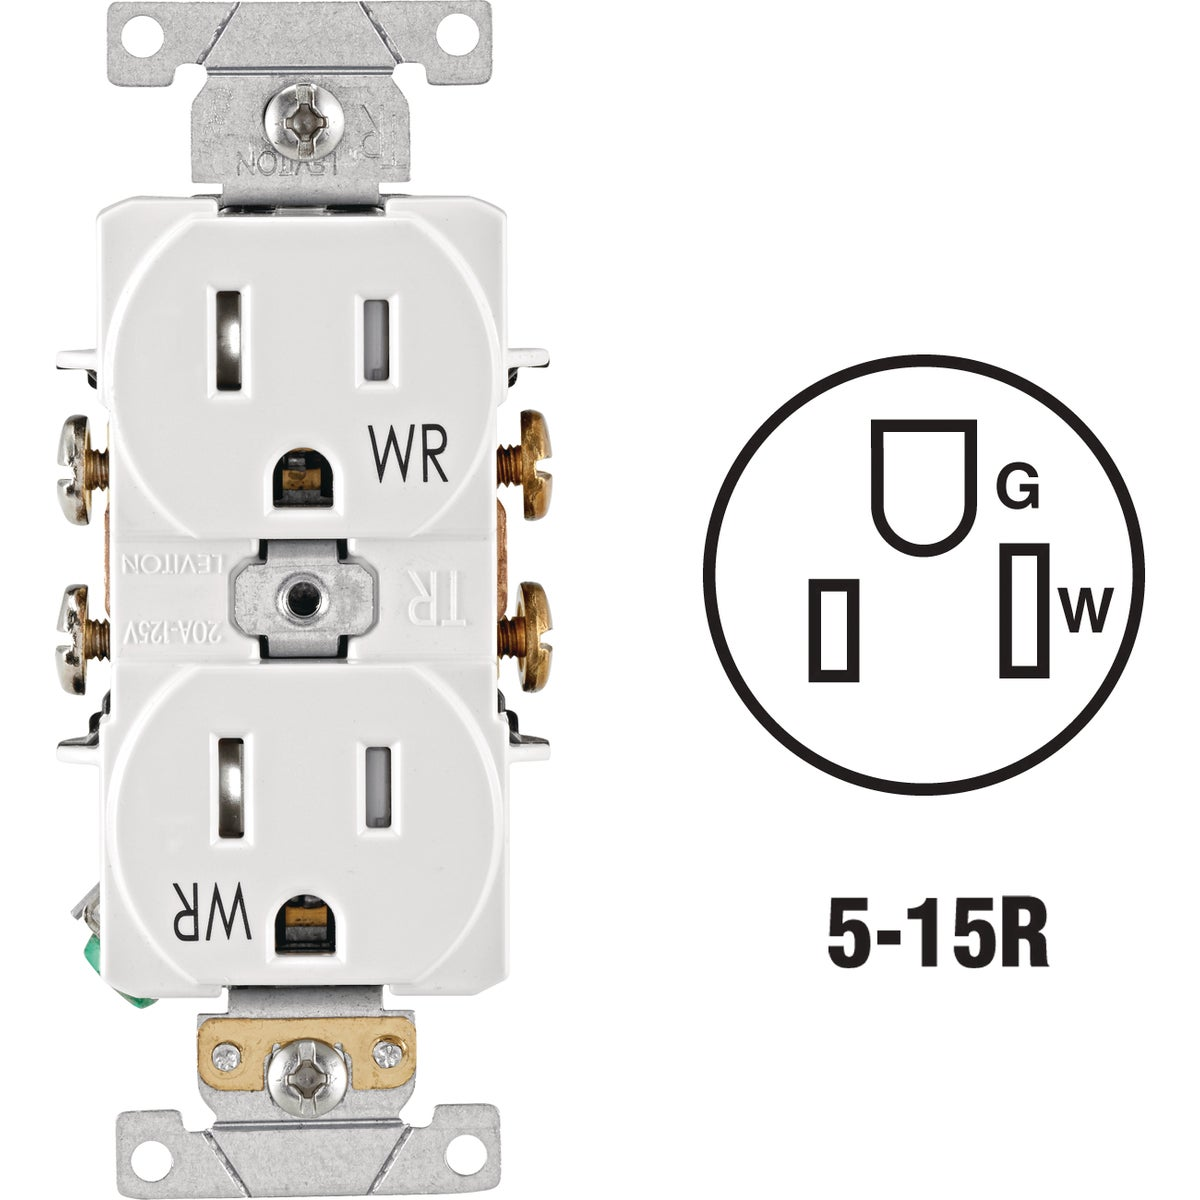 WHI 15A TR WEATHRPRF REC - S02-TWR15-W by Leviton Mfg Co